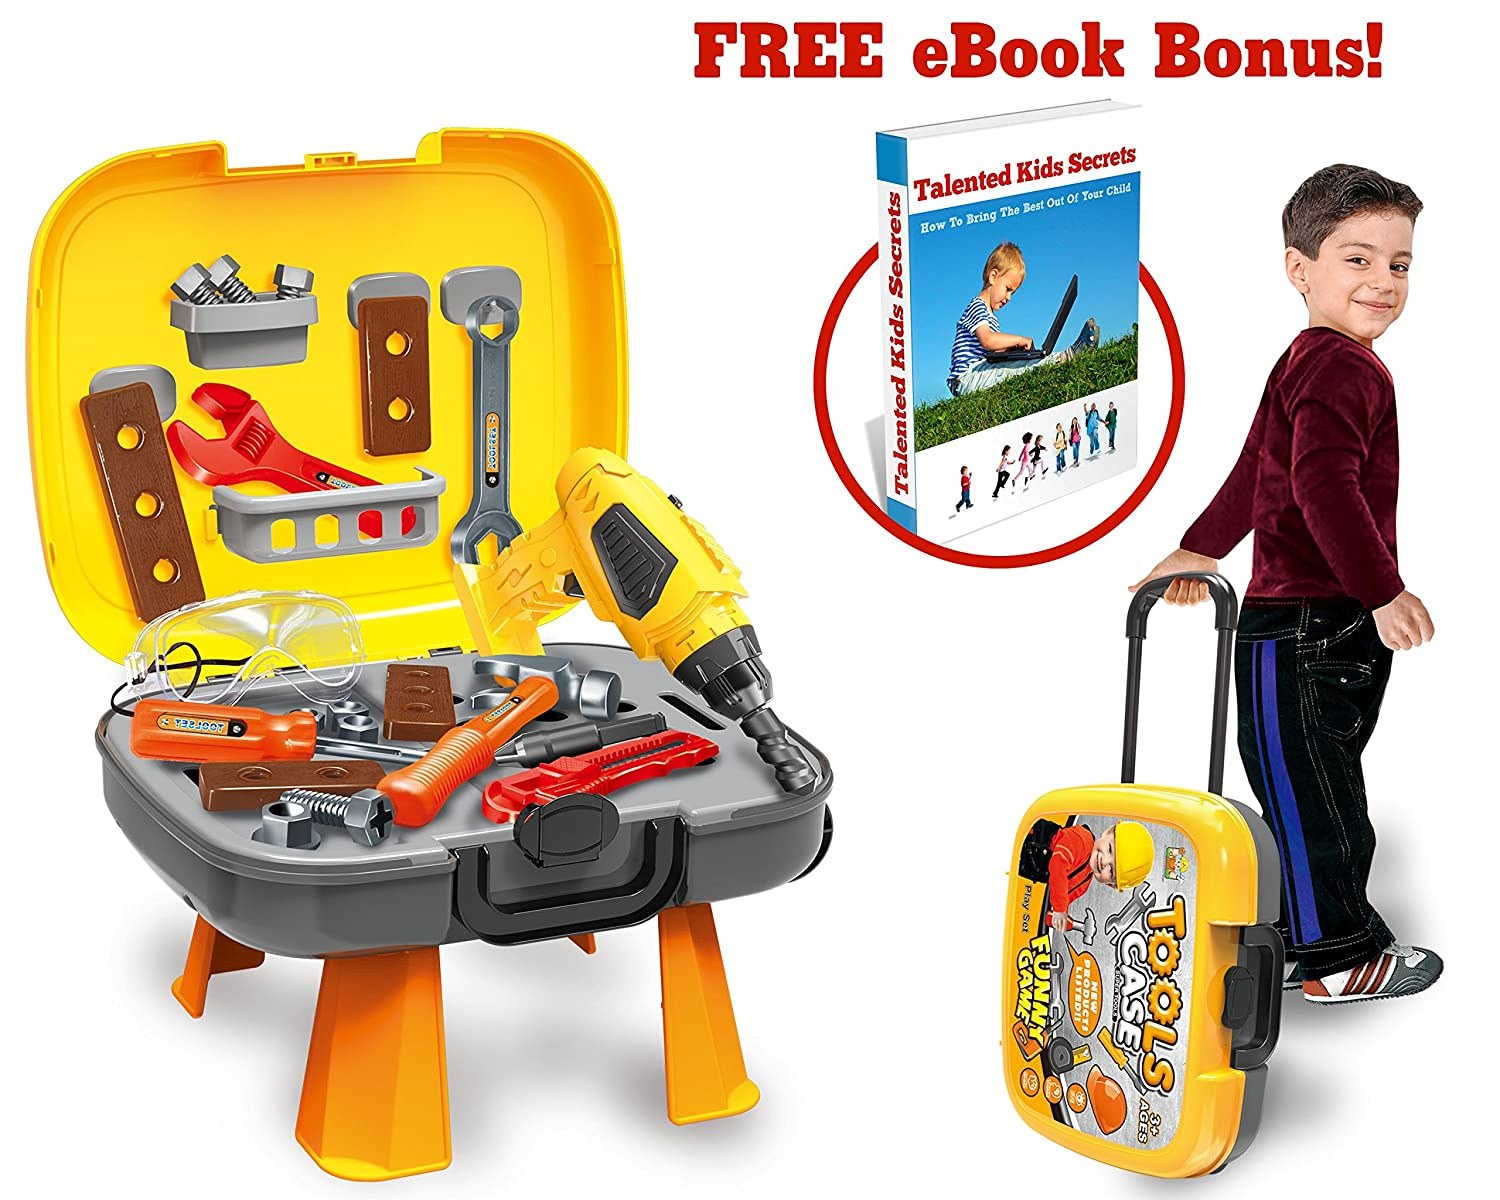 4 in 1 Tool Set, 40-Piece Set Of Construction Toys And Accessories For Kids & Toddlers Ages 3+, Provides Realistic STEM Innovation and Learning For Boys & Girls! BONUS Ebook: Talented Kids Secrets! Tevelo